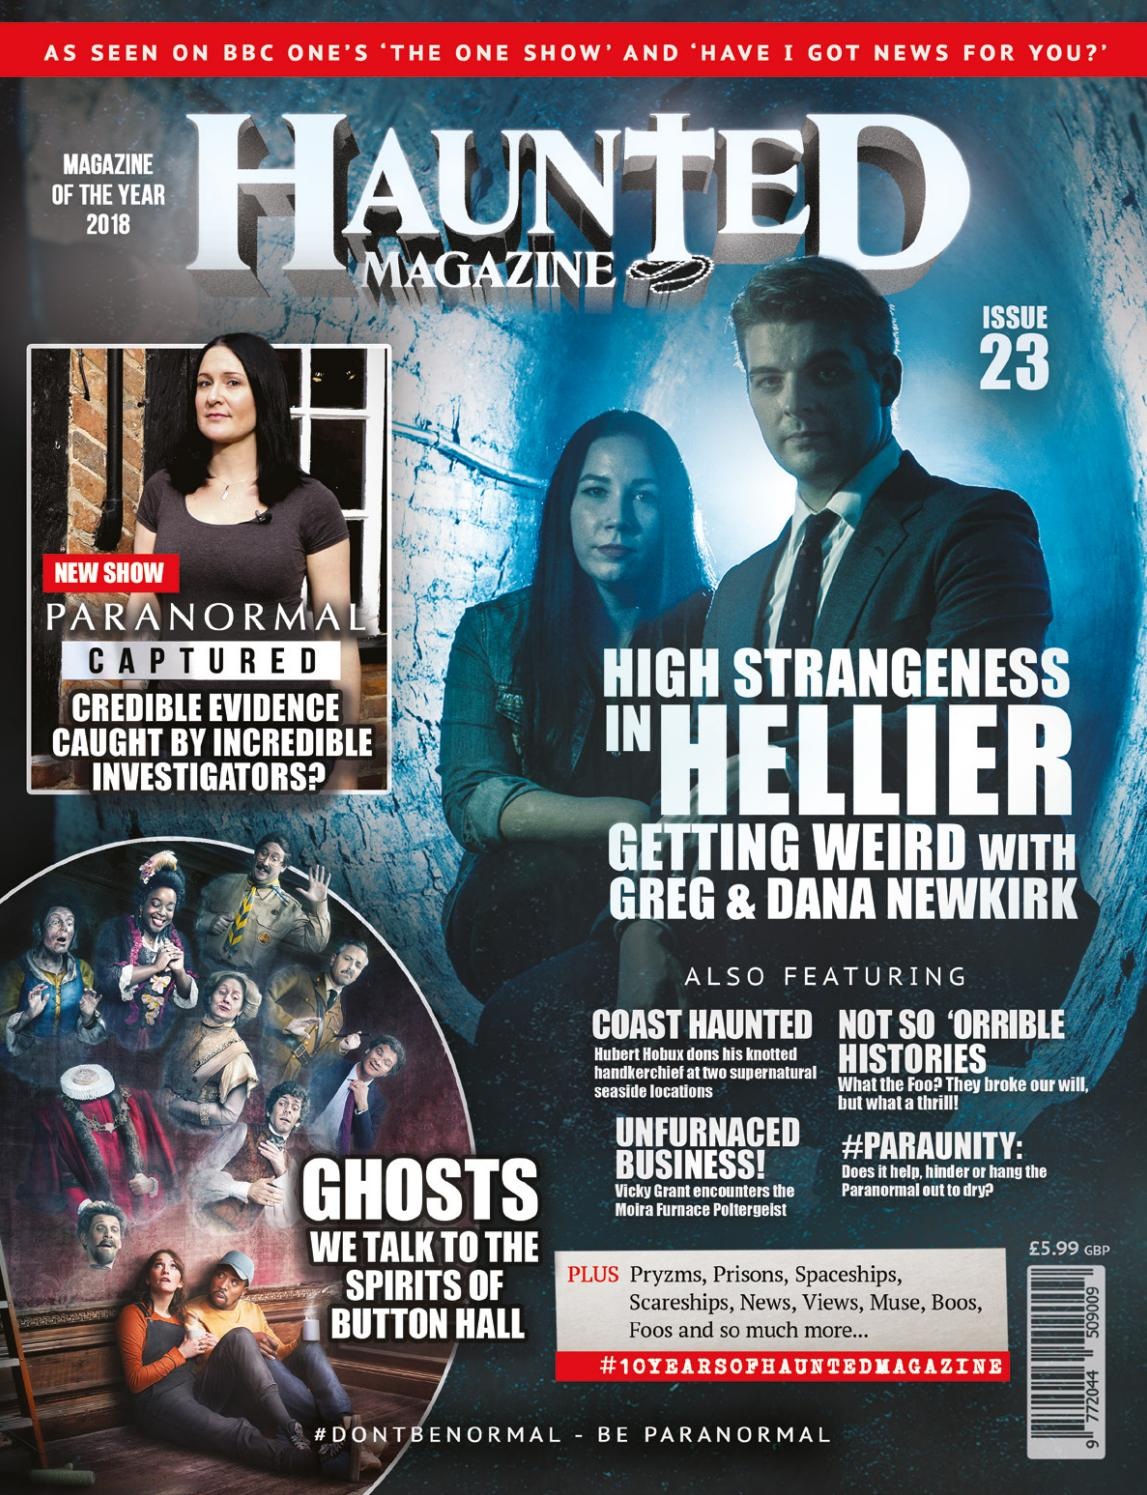 Haunted Magazine Issue 23 with Greg and Dana Newkirk by Dead